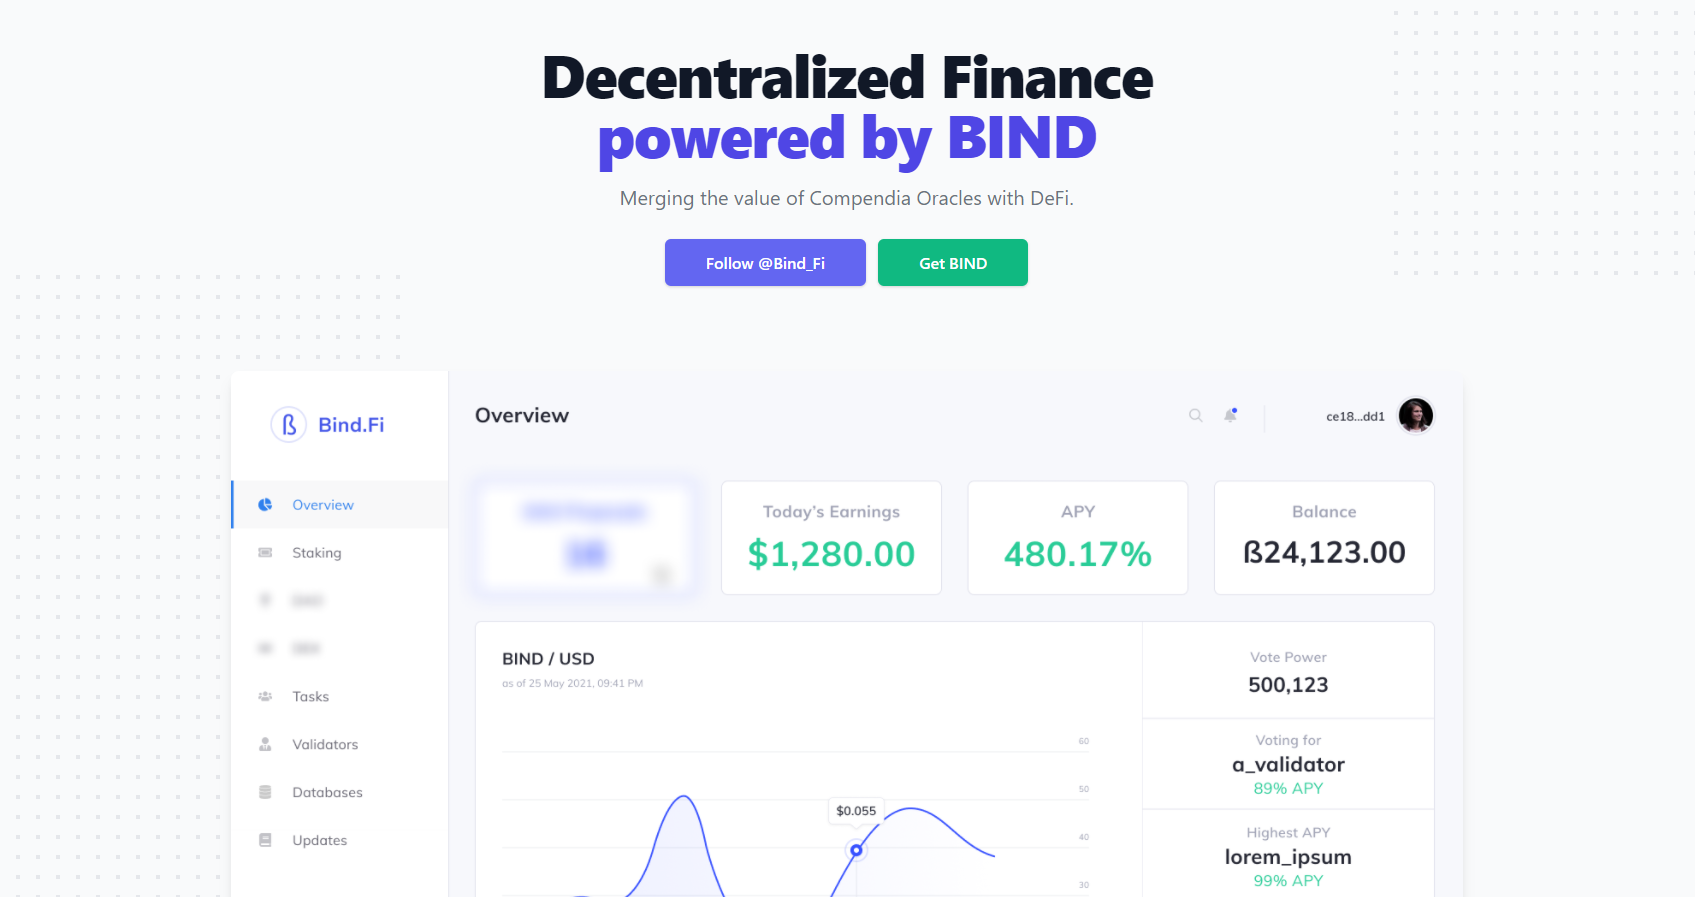 Introducing Bind.Fi - Decentralized Finance powered by BIND